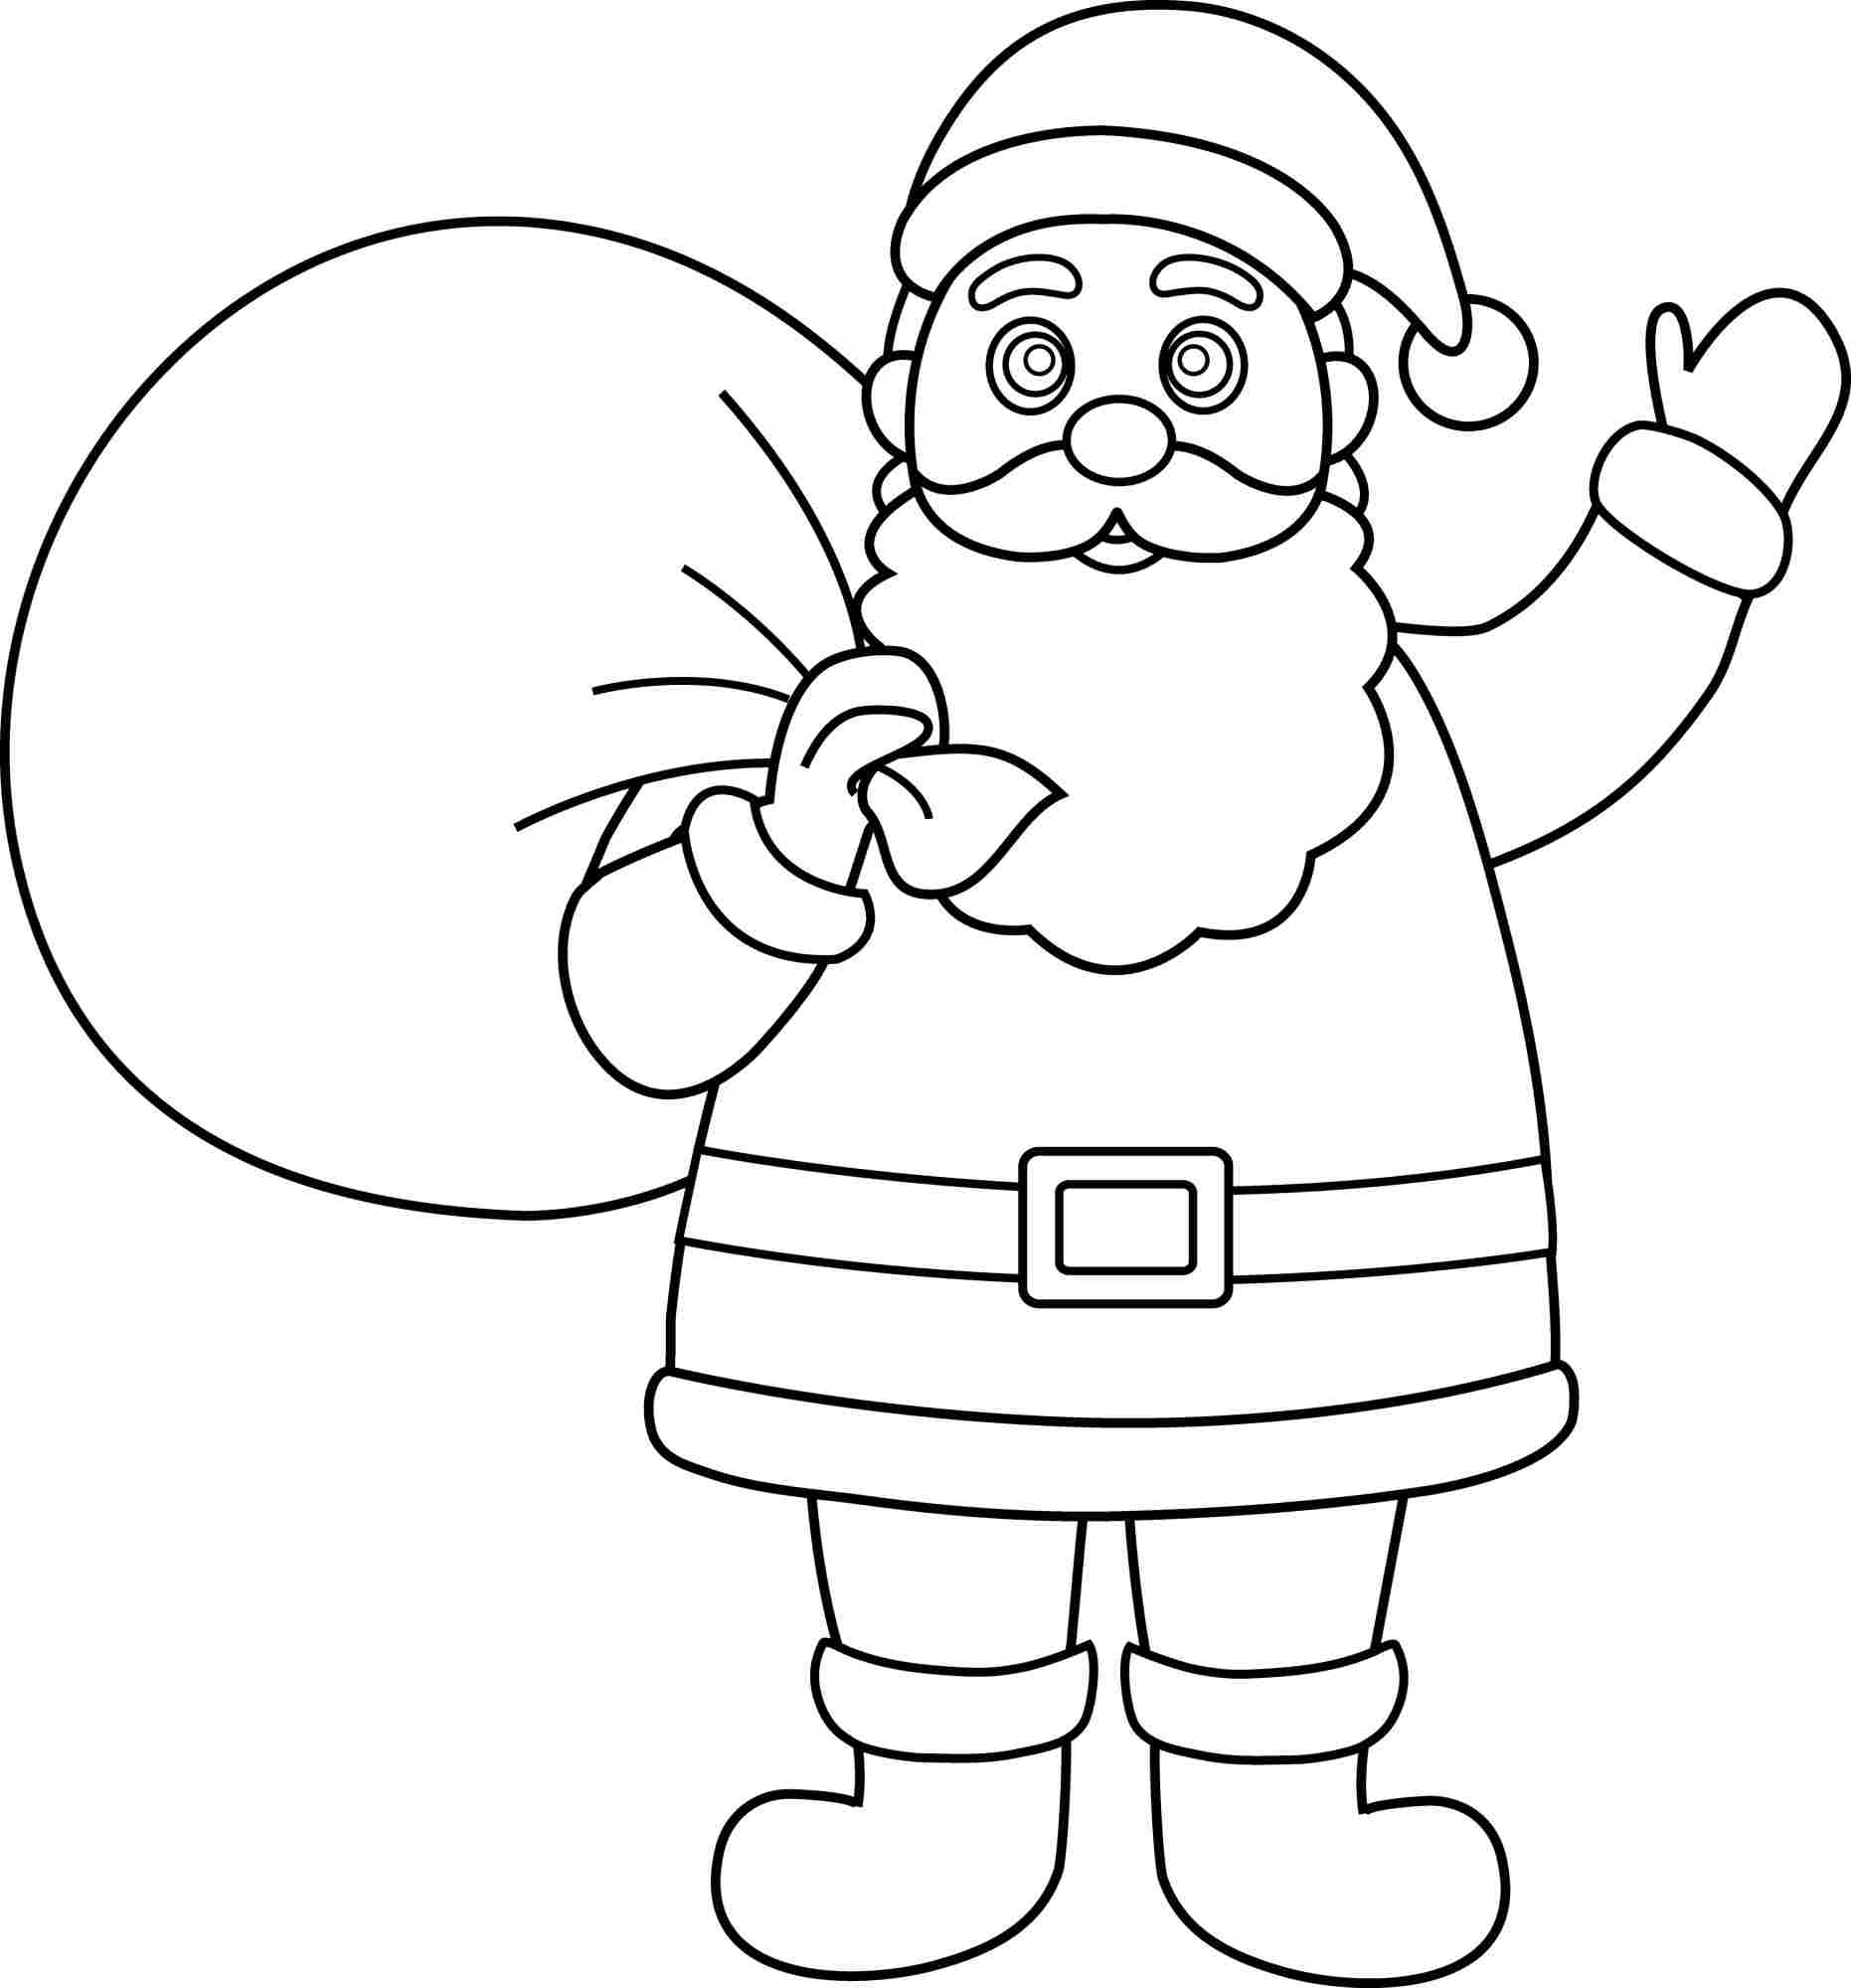 father christmas online coloring pages - photo#33